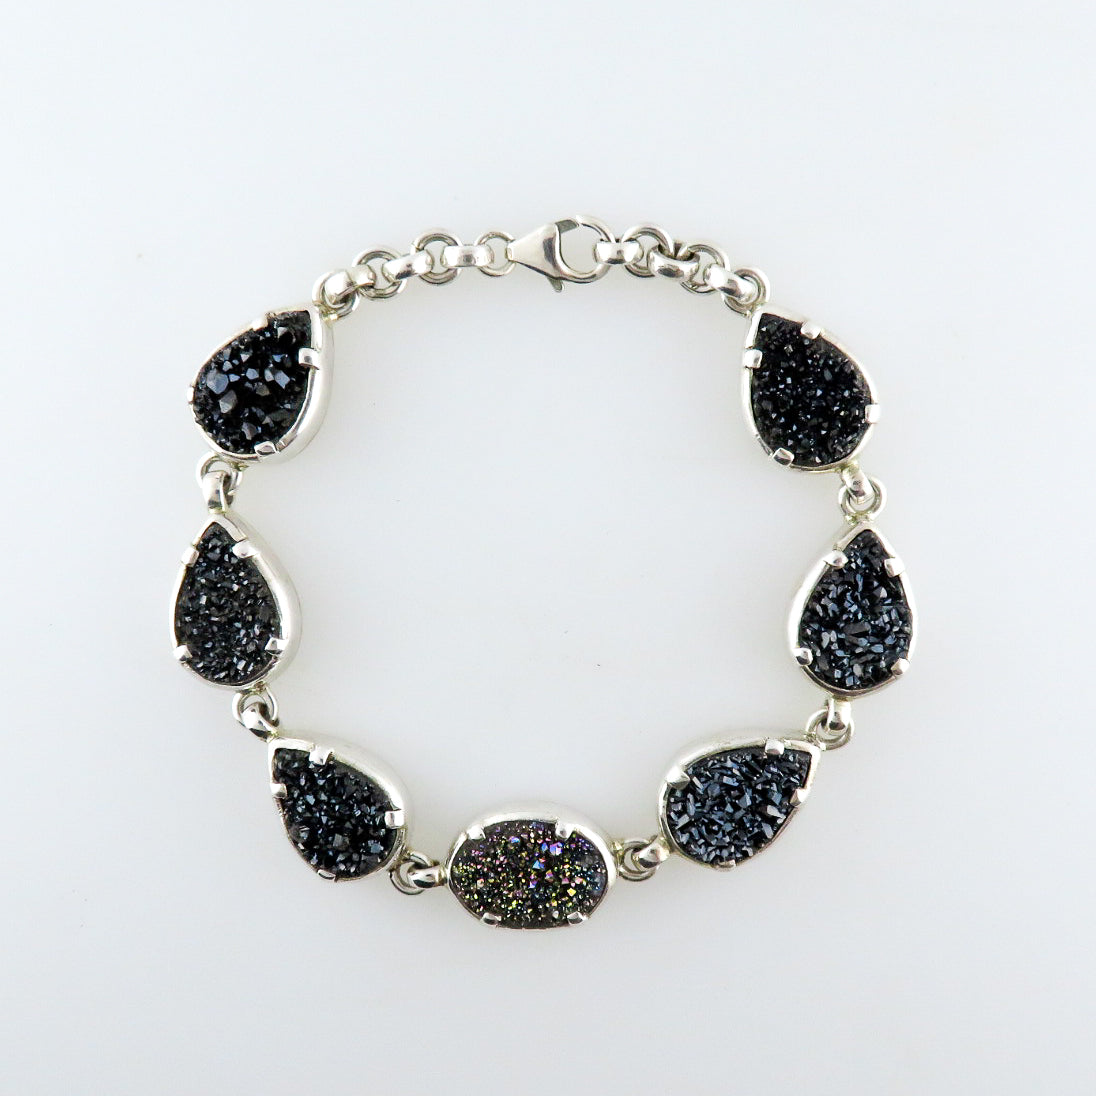 Drusy Quartz Bracelet with Sterling Silver